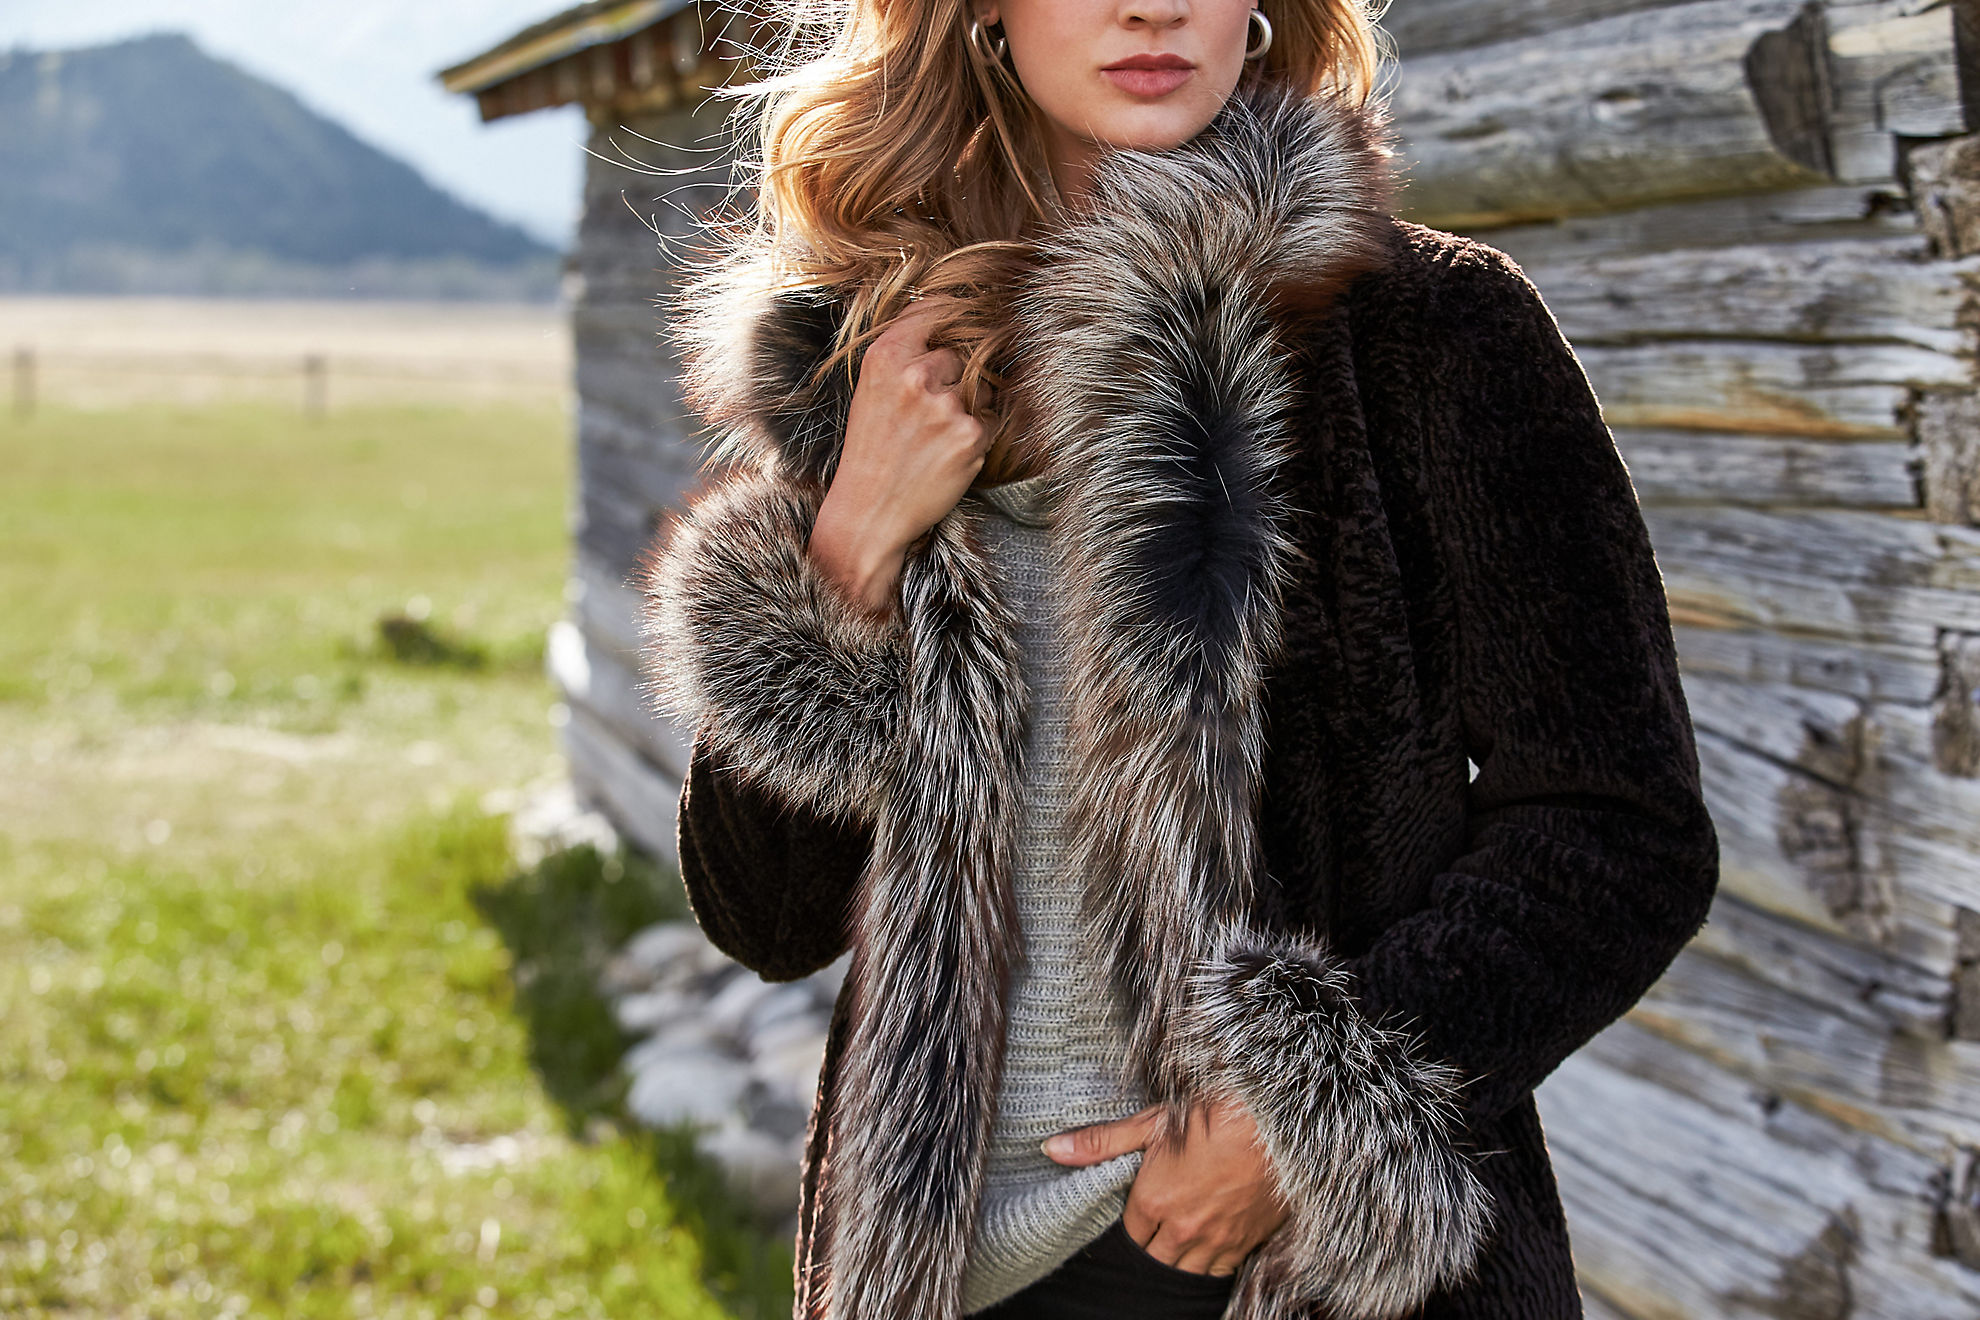 Grace Reversible Astrakhan Lamb Fur and Leather Coat with Fox Fur Trim